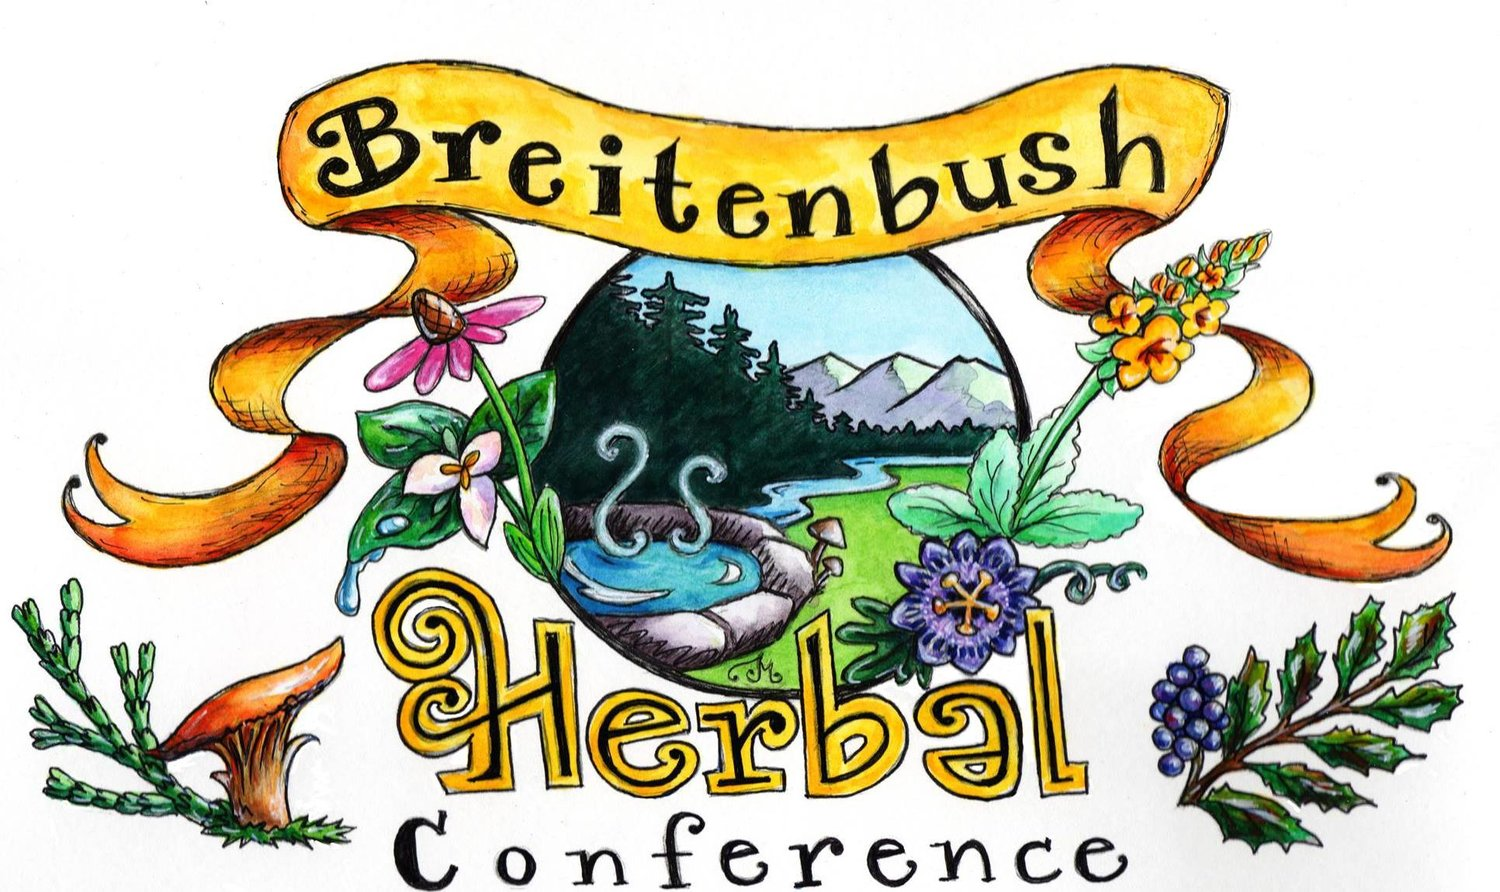 Breitenbush Herbal Conference